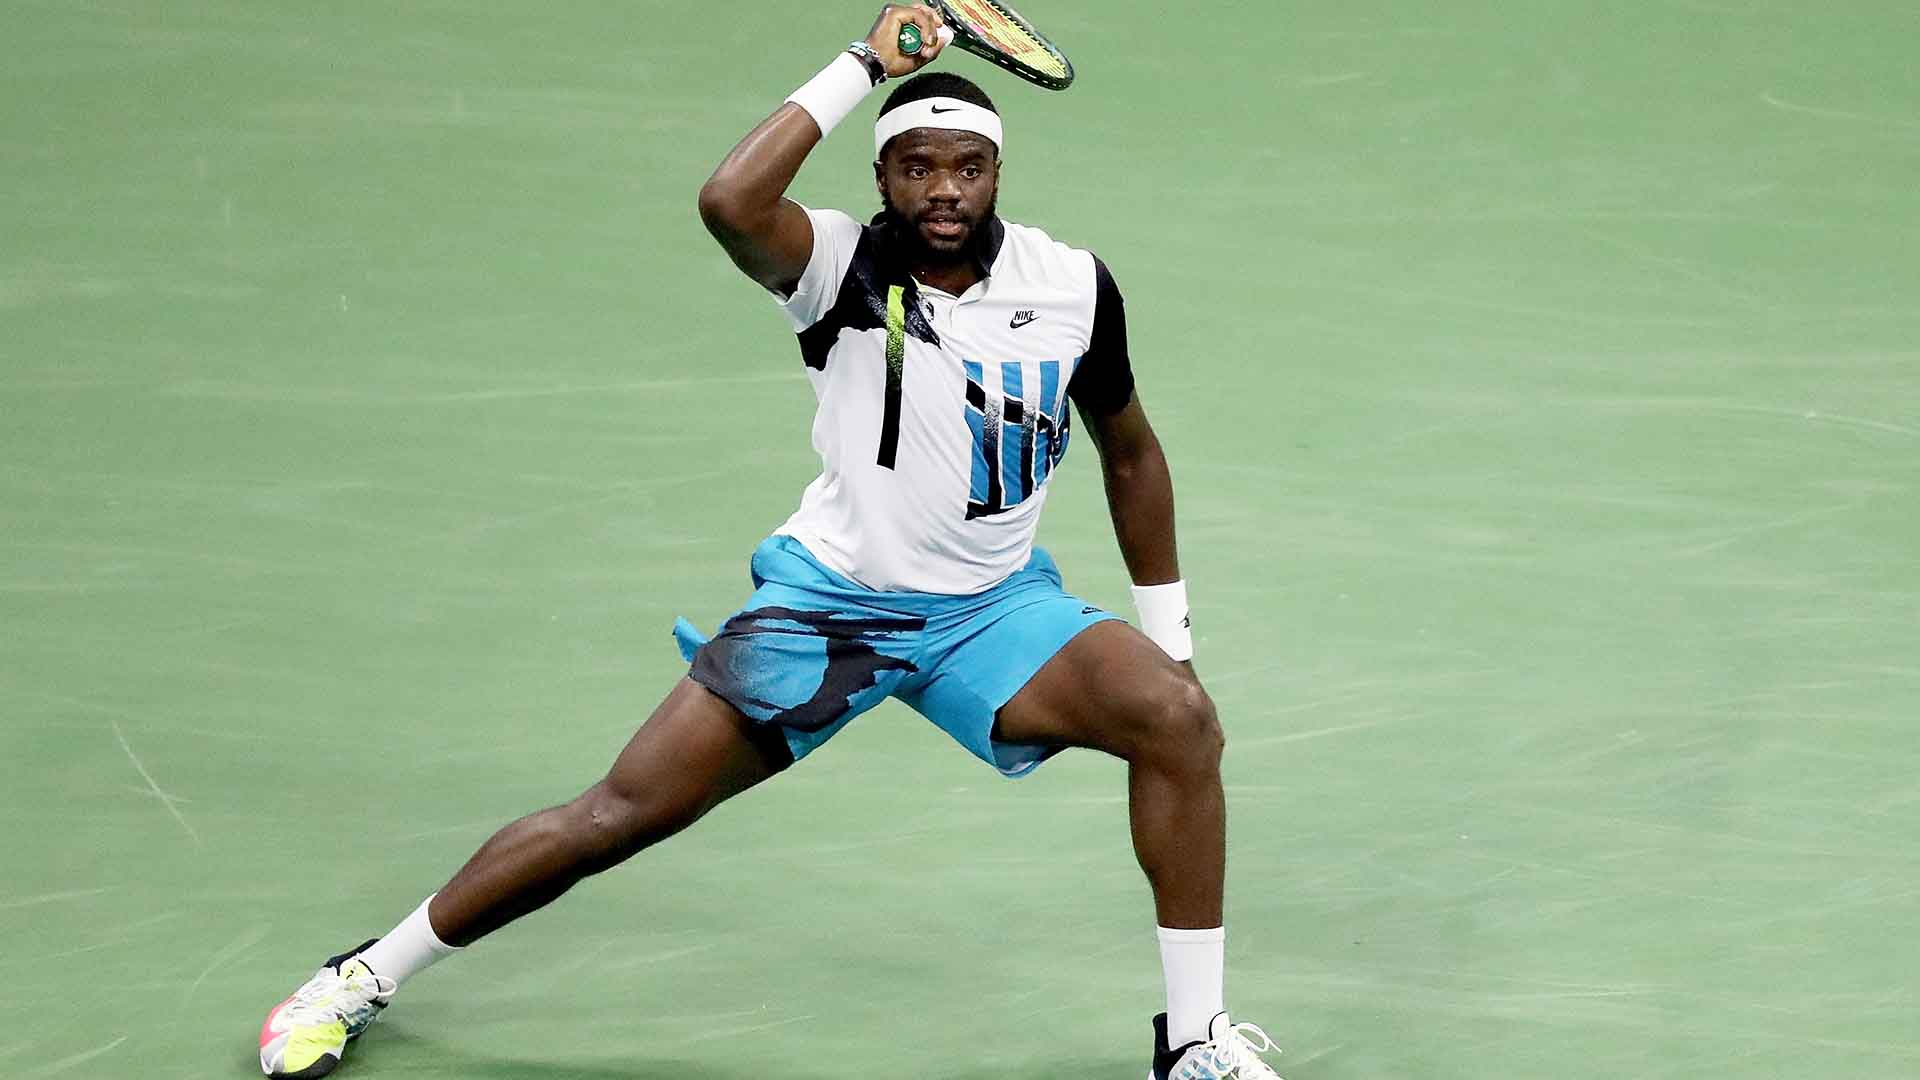 <a href='/en/players/frances-tiafoe/td51/overview'>Frances Tiafoe</a> reached the <a href='/en/tournaments/us-open/560/overview'>US Open</a> fourth round for the first time in 2020.